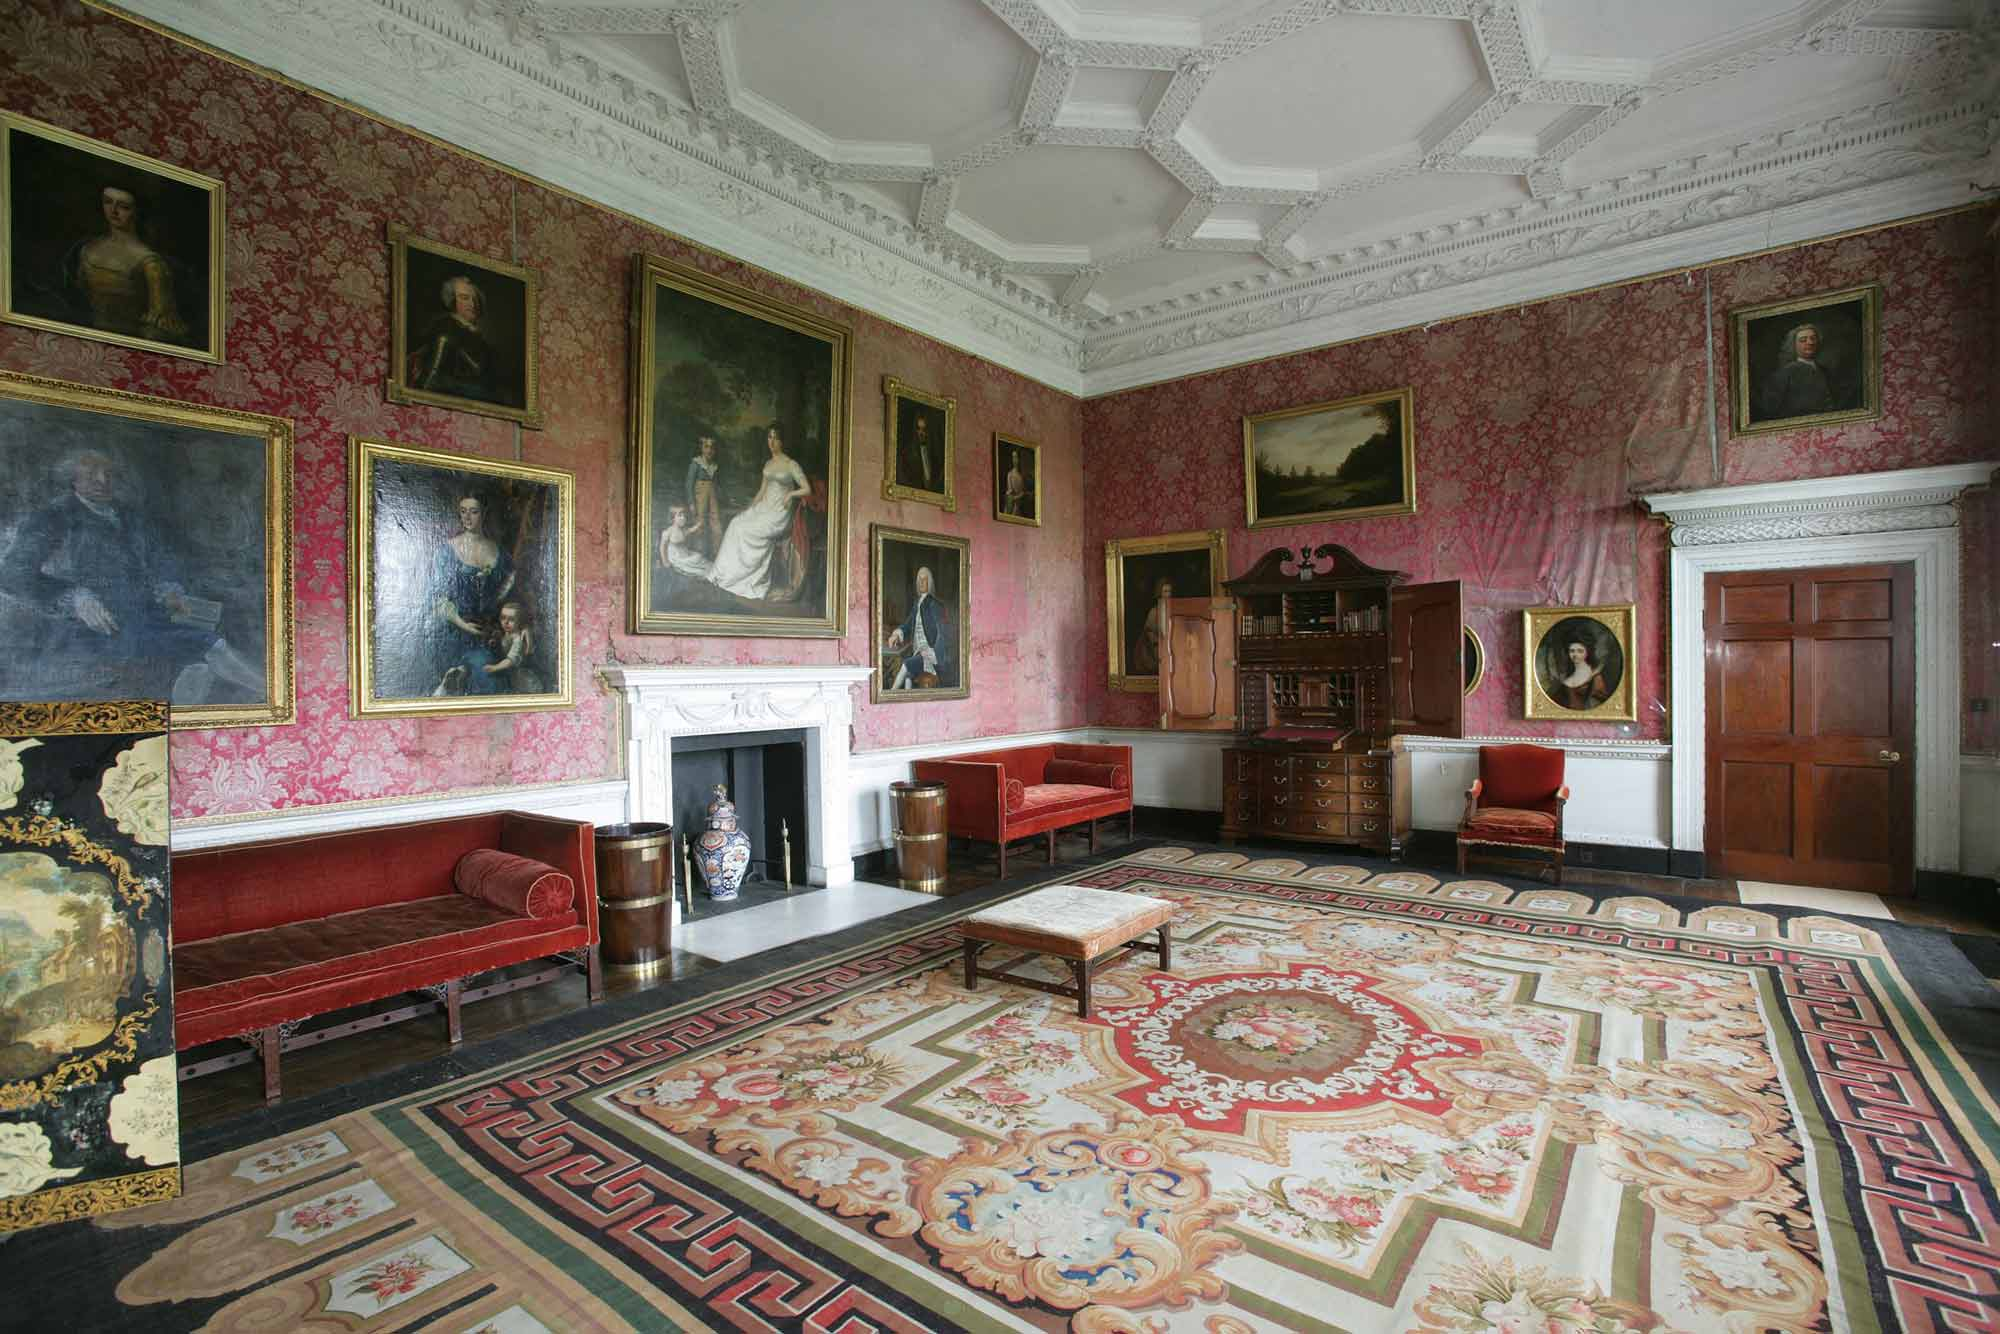 The Red Drawing Room prior to conservation